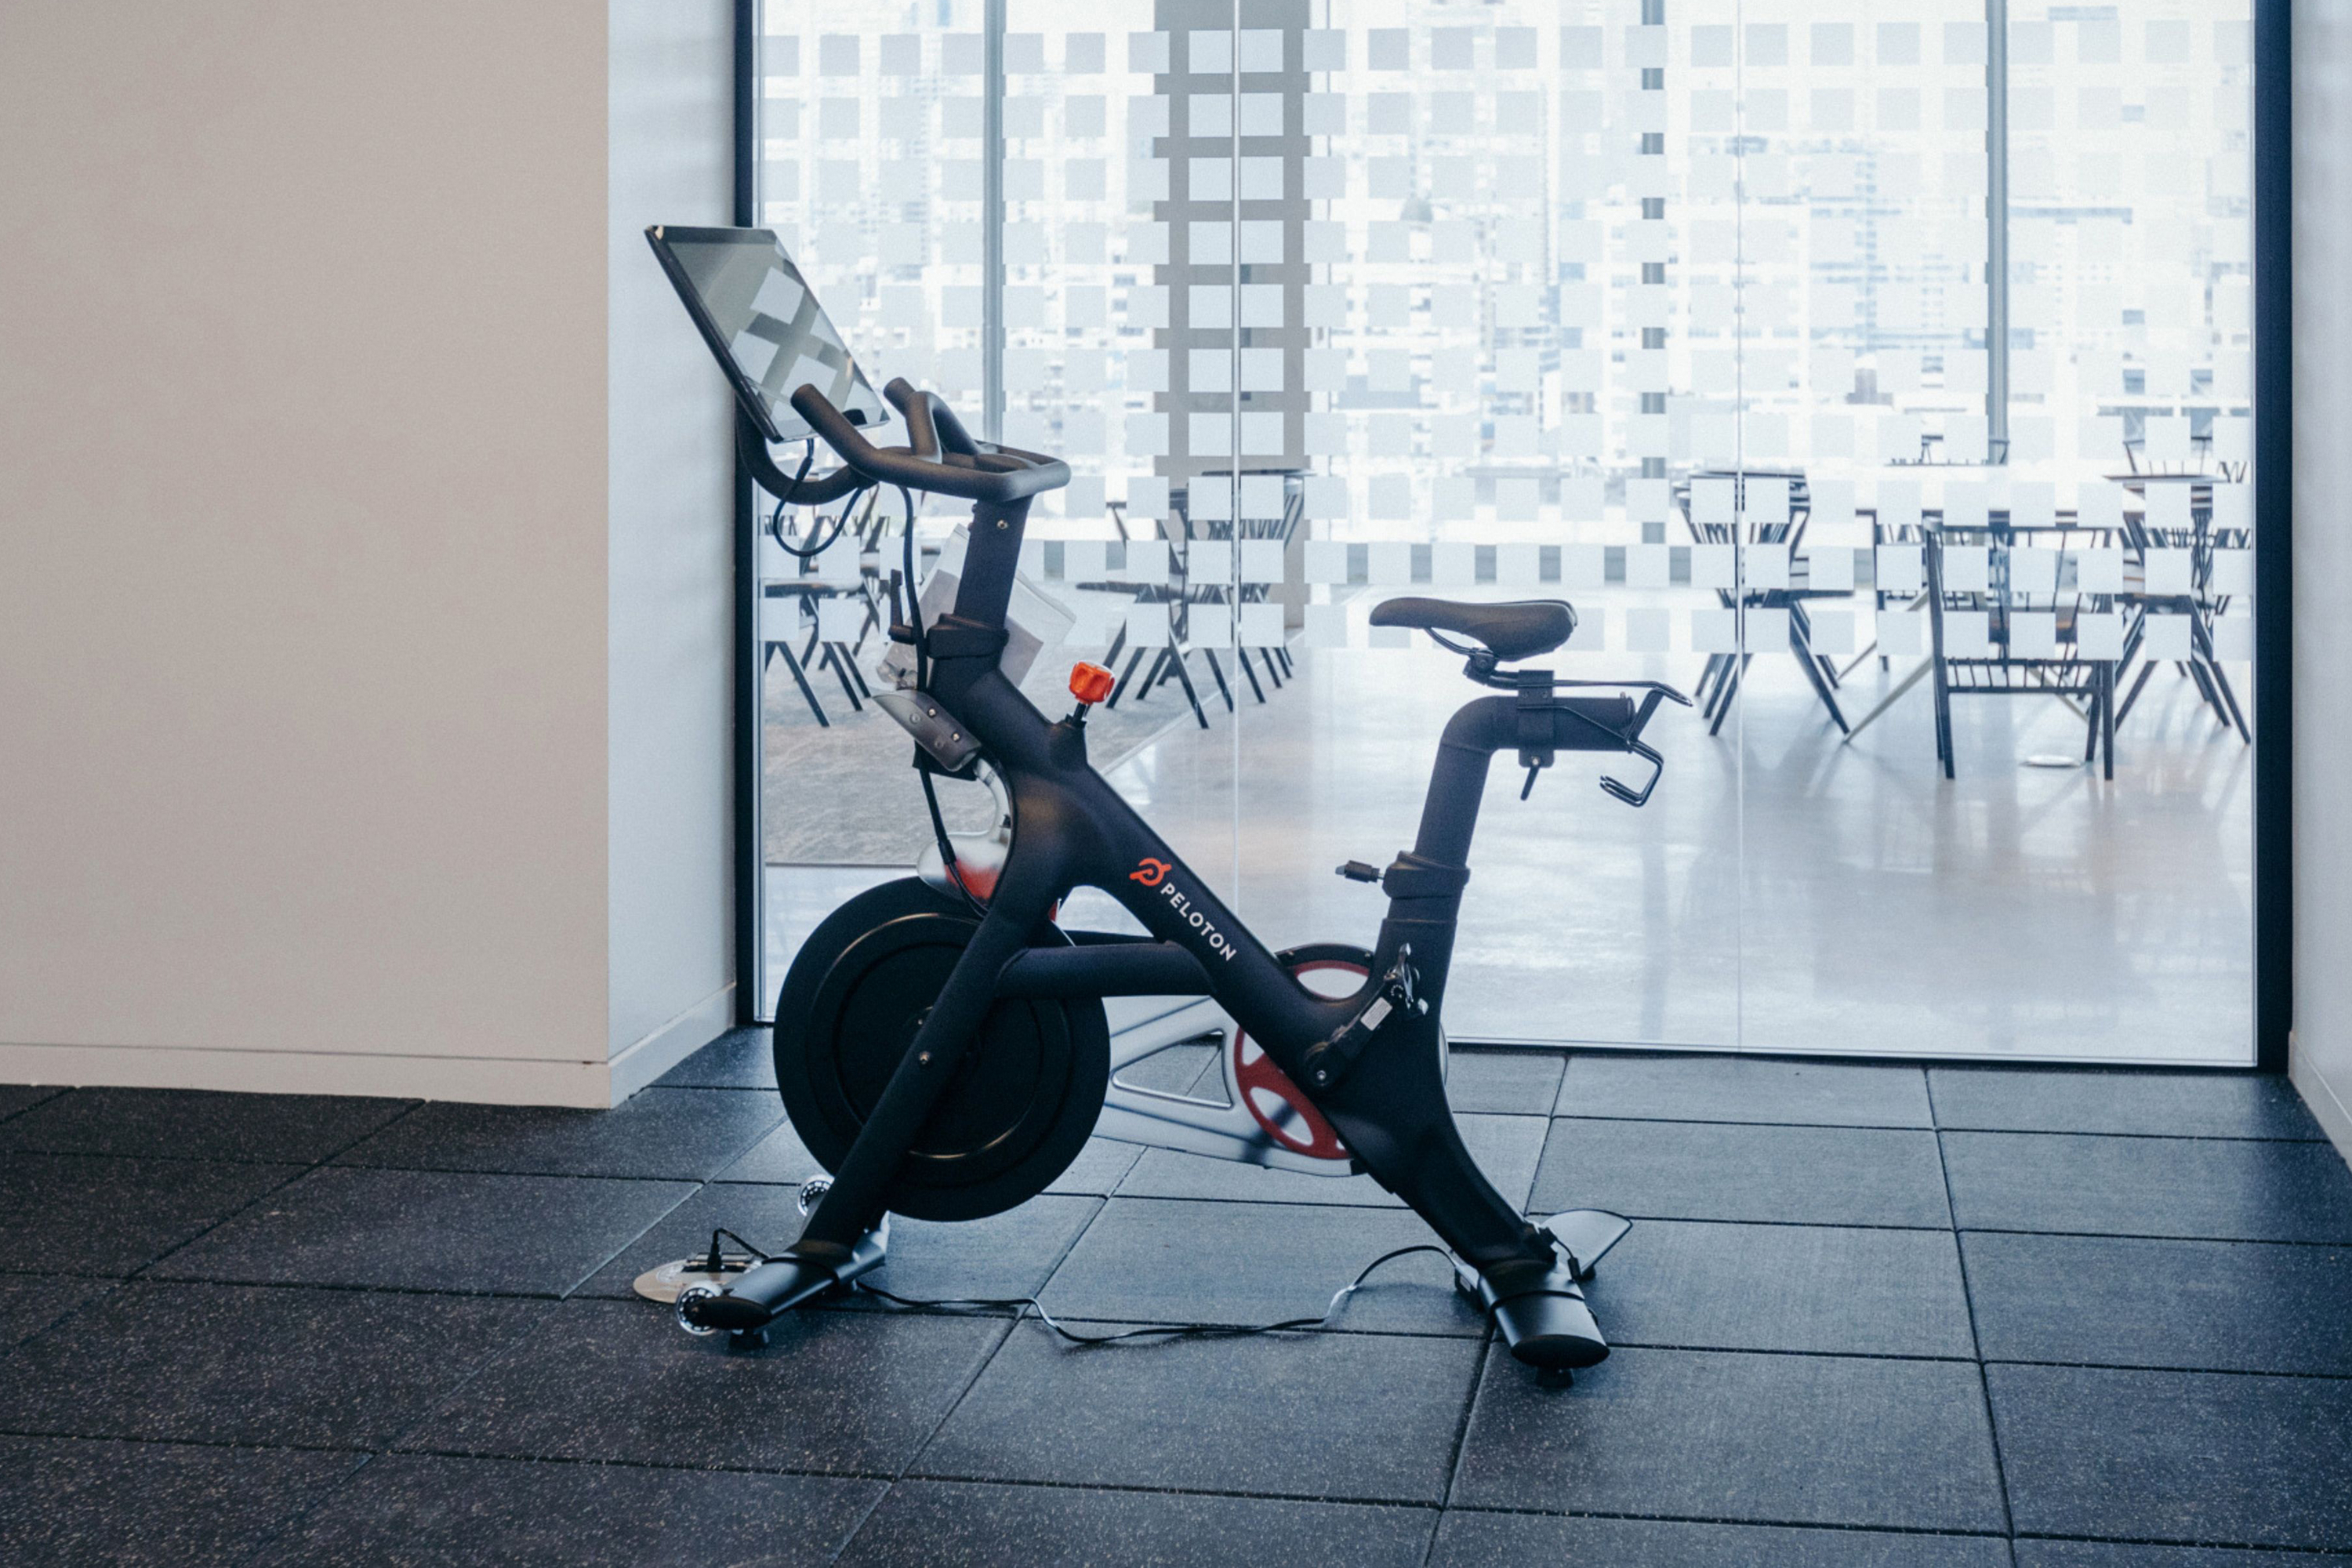 Peloton ad controversy has experts in debate over long-term effects for the brand